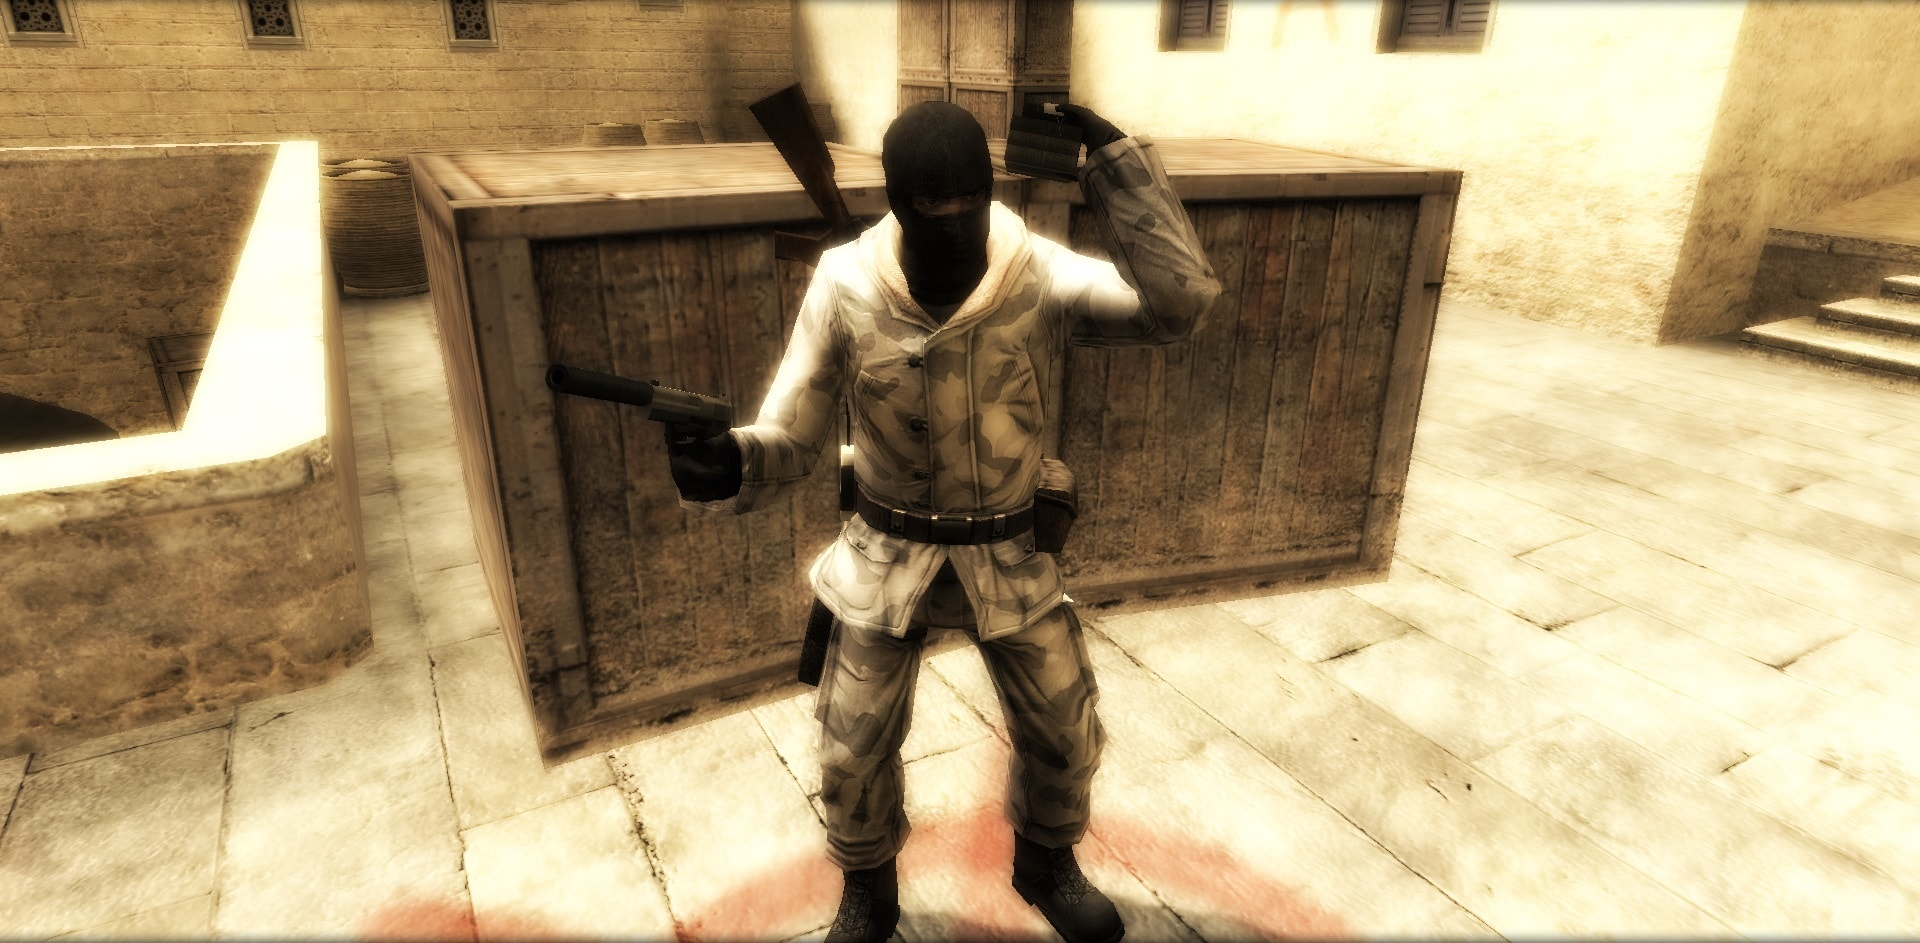 Counter-Strike: Source full hd wallpapers